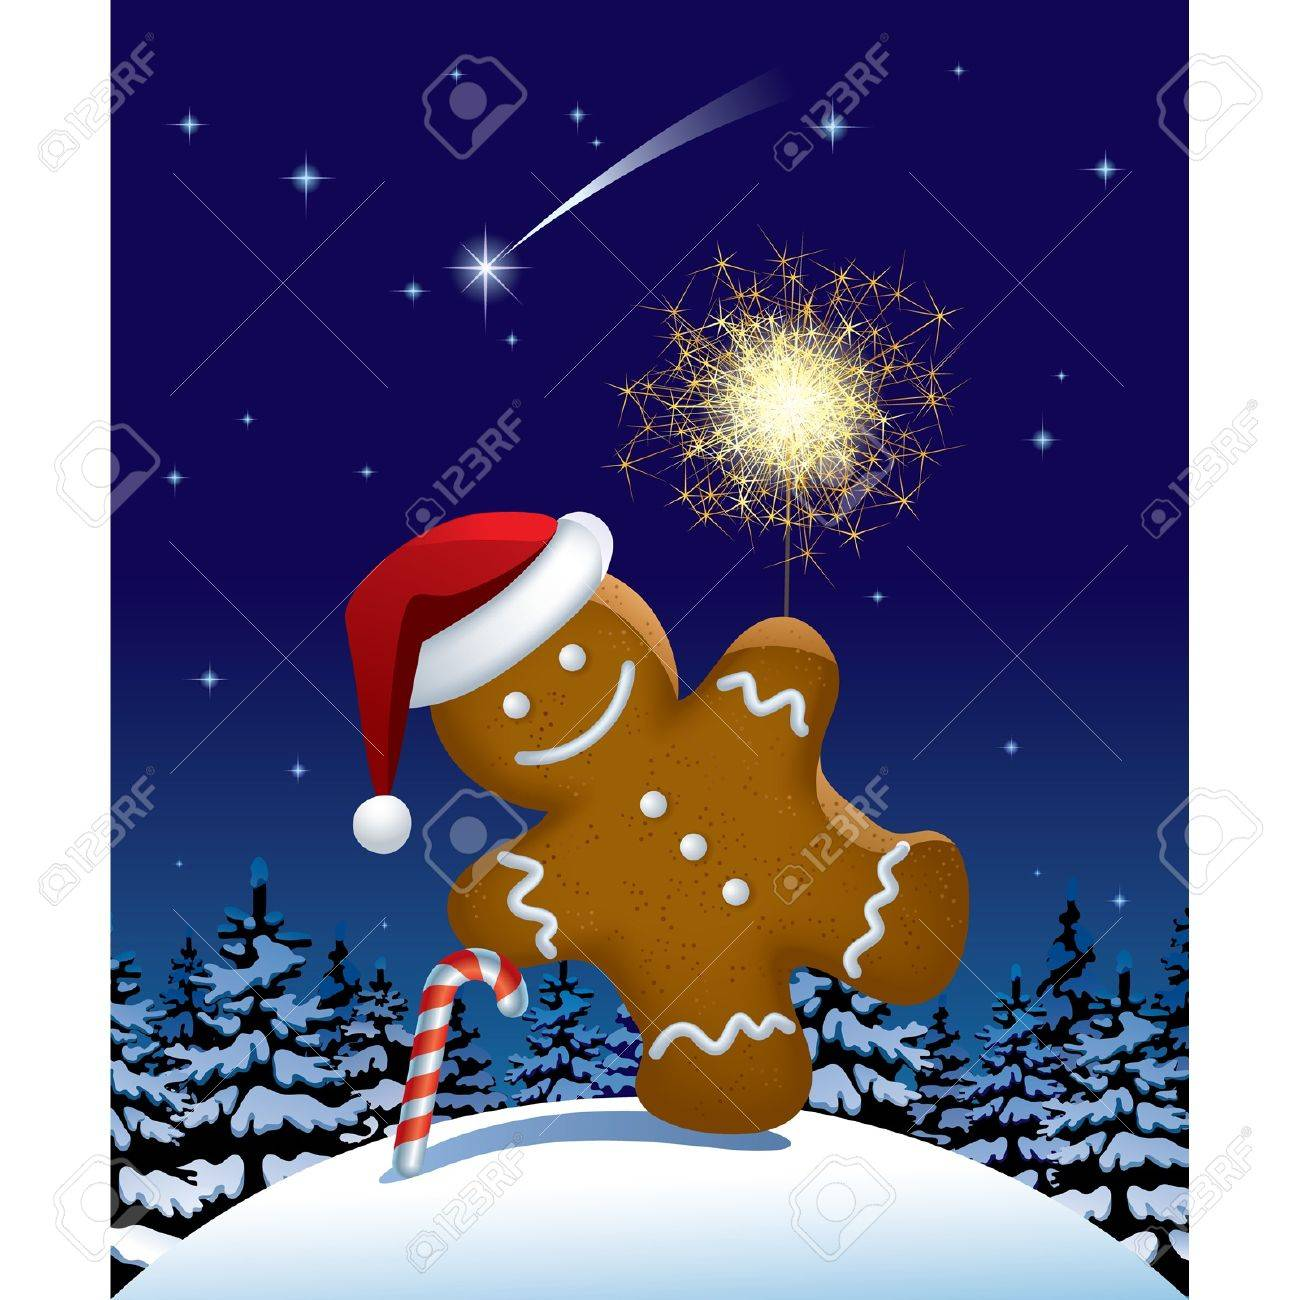 Vector illustration of gingerbread man wih a sparkler in winter fir forest in the night Stock Vector - 20237489